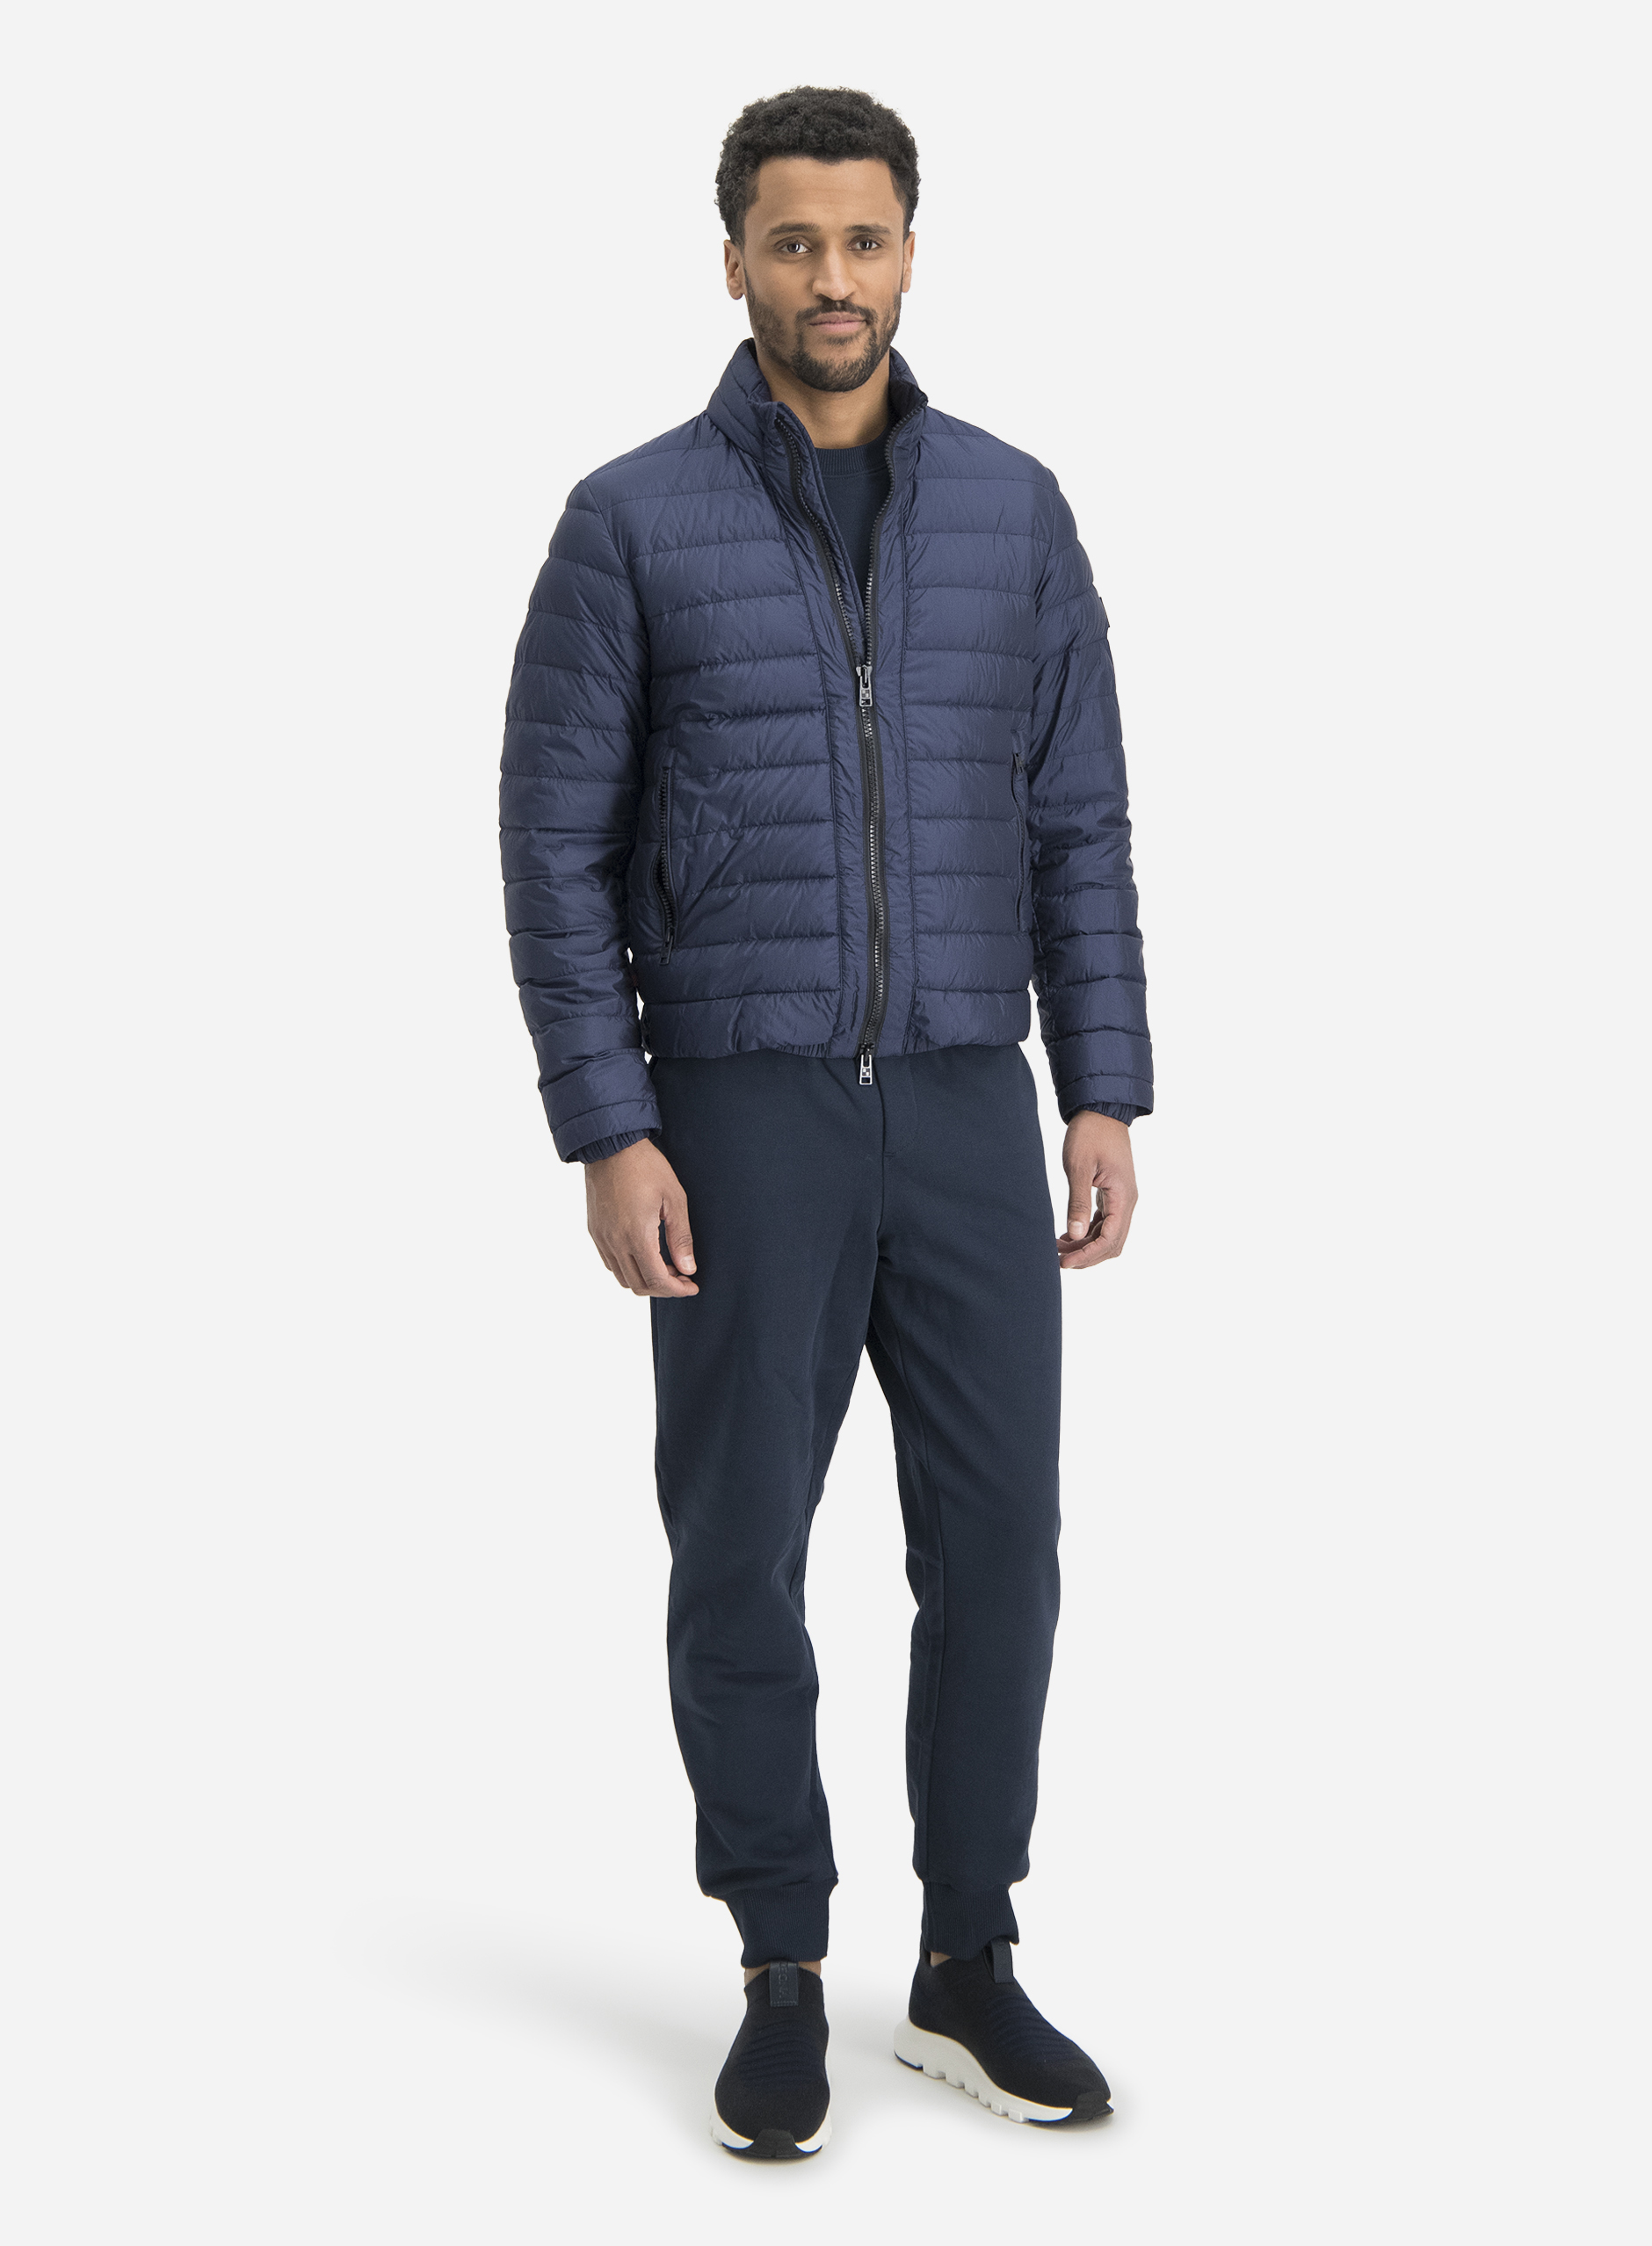 The Blue Woolrich Look